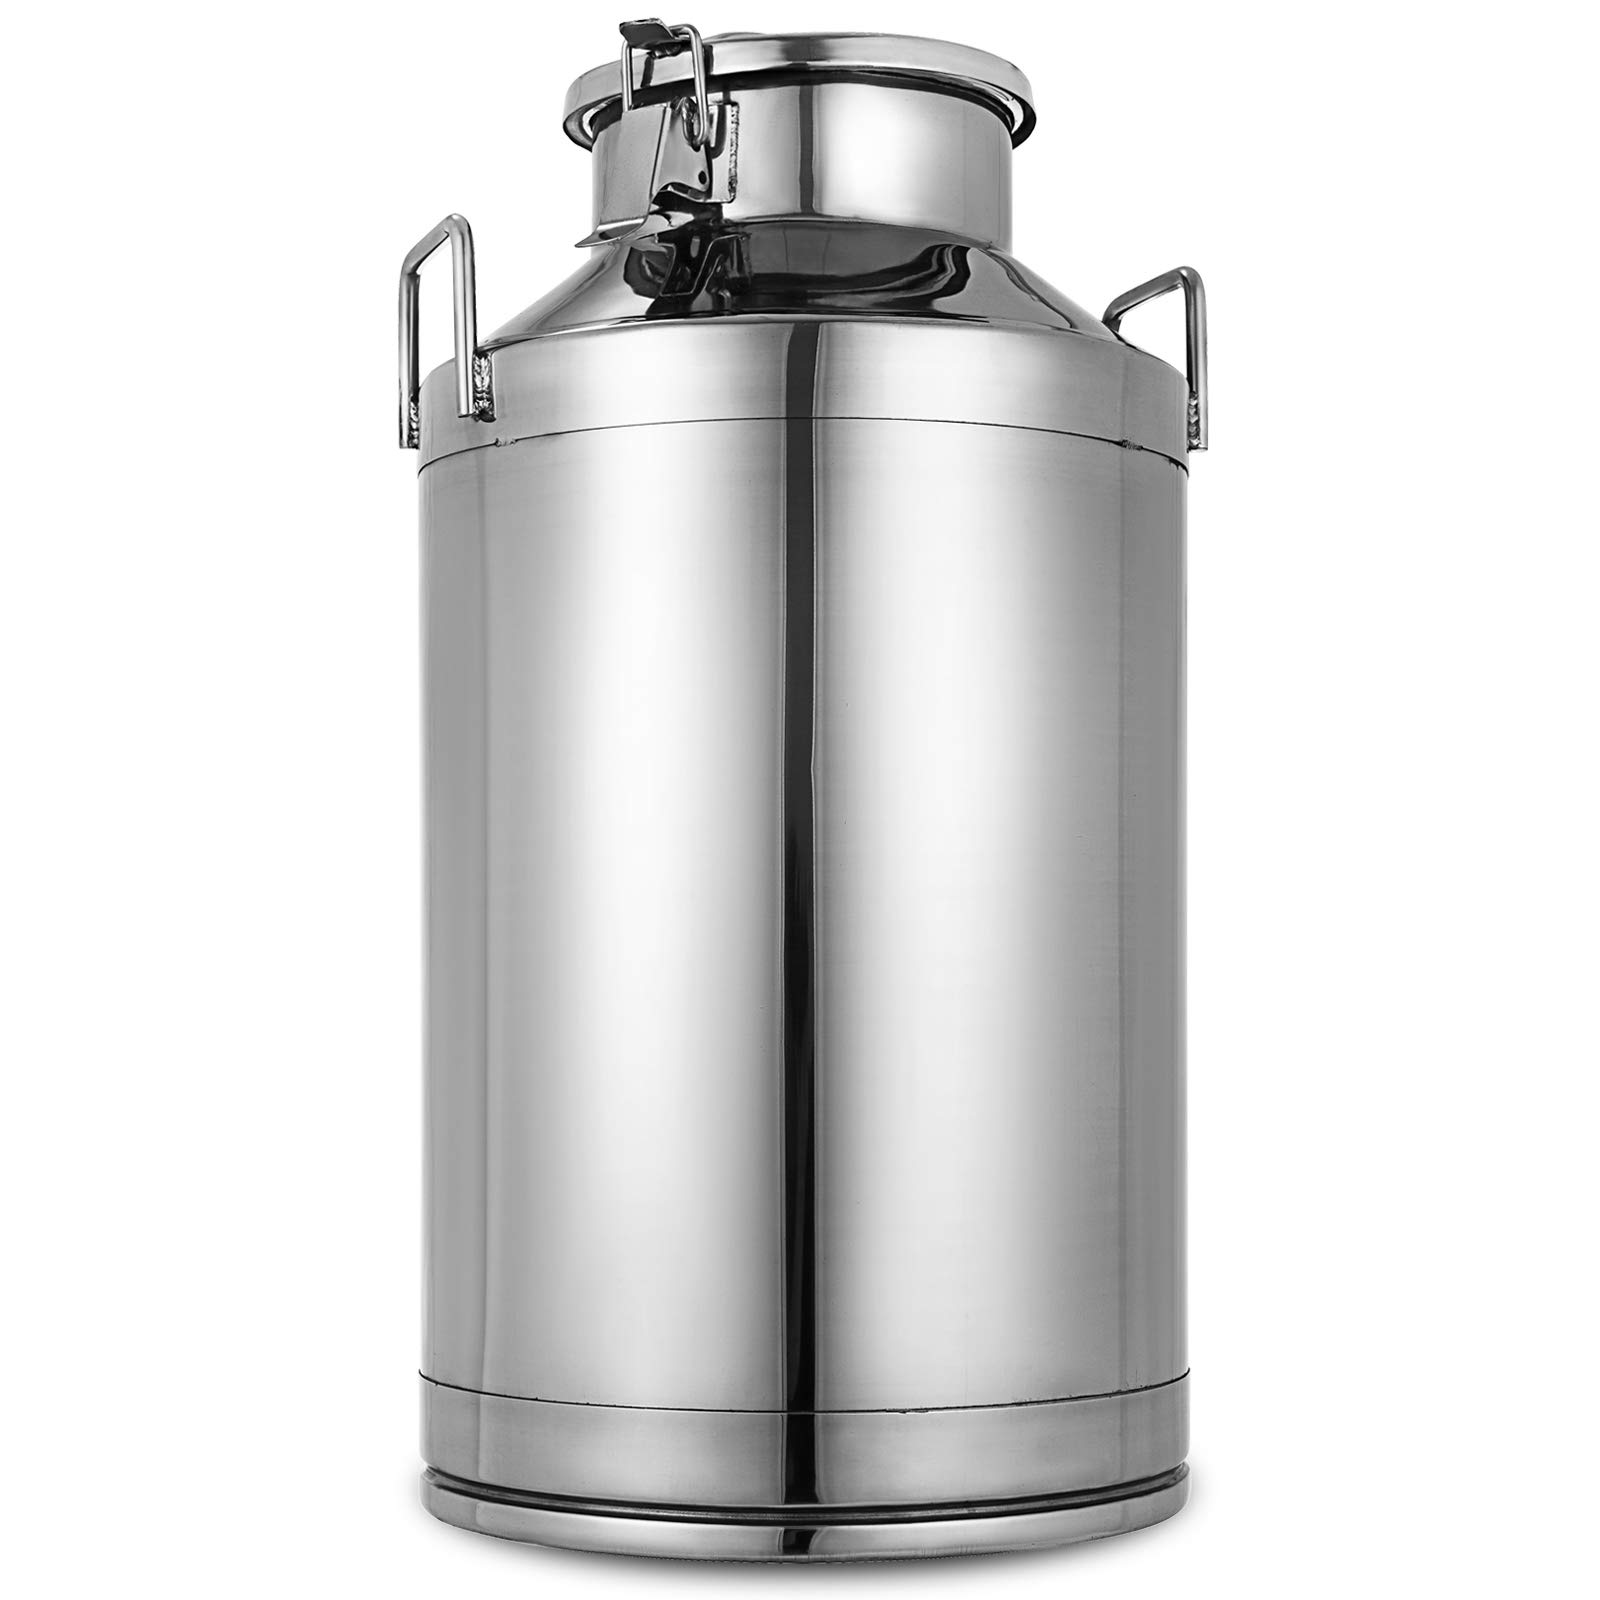 Mophorn Stainless Steel Milk Can 50 Liter Milk bucket Wine Pail Bucket 13.25 Gallon Milk Can Tote Jug with Sealed Lid Heavy Duty (50L)